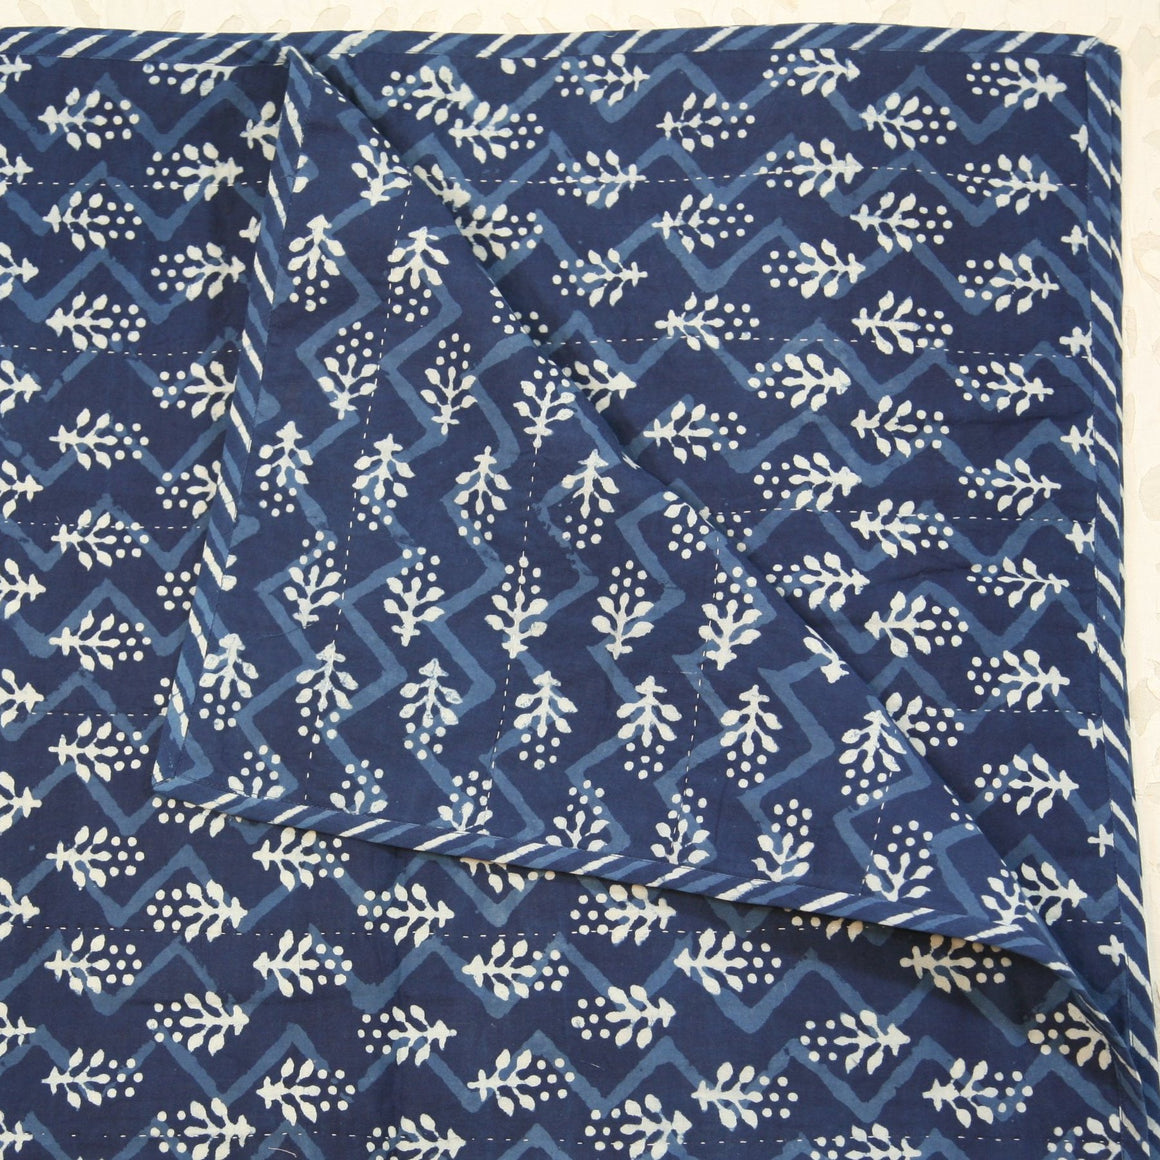 Quilted Couch Throw in Hand Block Indigo Flower Zig Zag Print